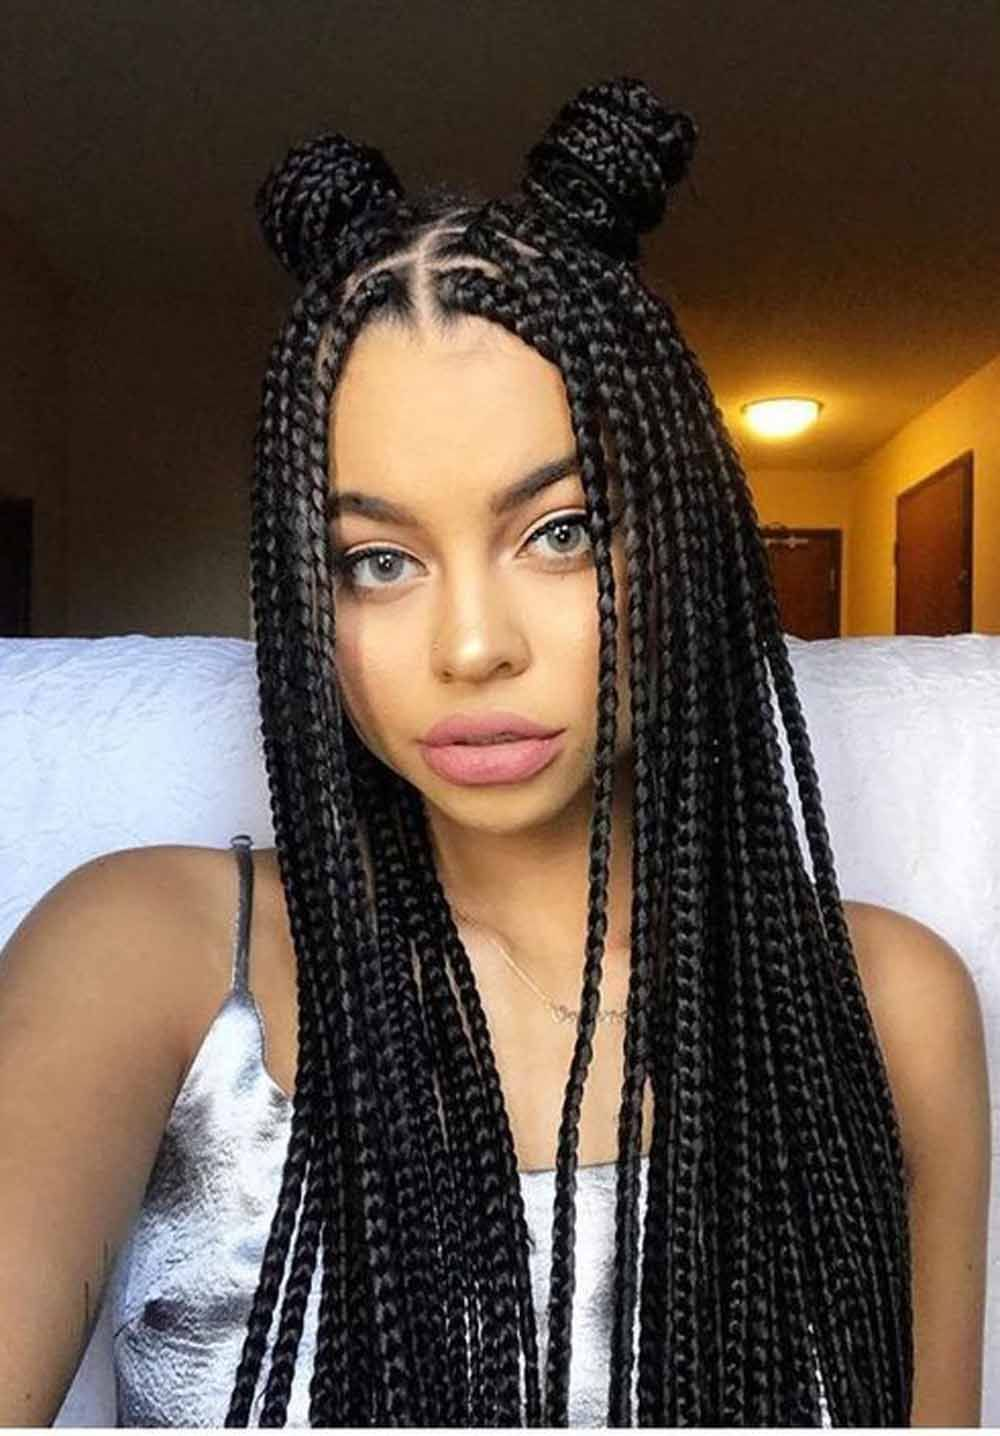 Braided And Hairstyles Braided Hairstyles With Bangs For Black Hair Easy Braided Hairstyle Single Braids Hairstyles Box Braids Styling Box Braids Hairstyles